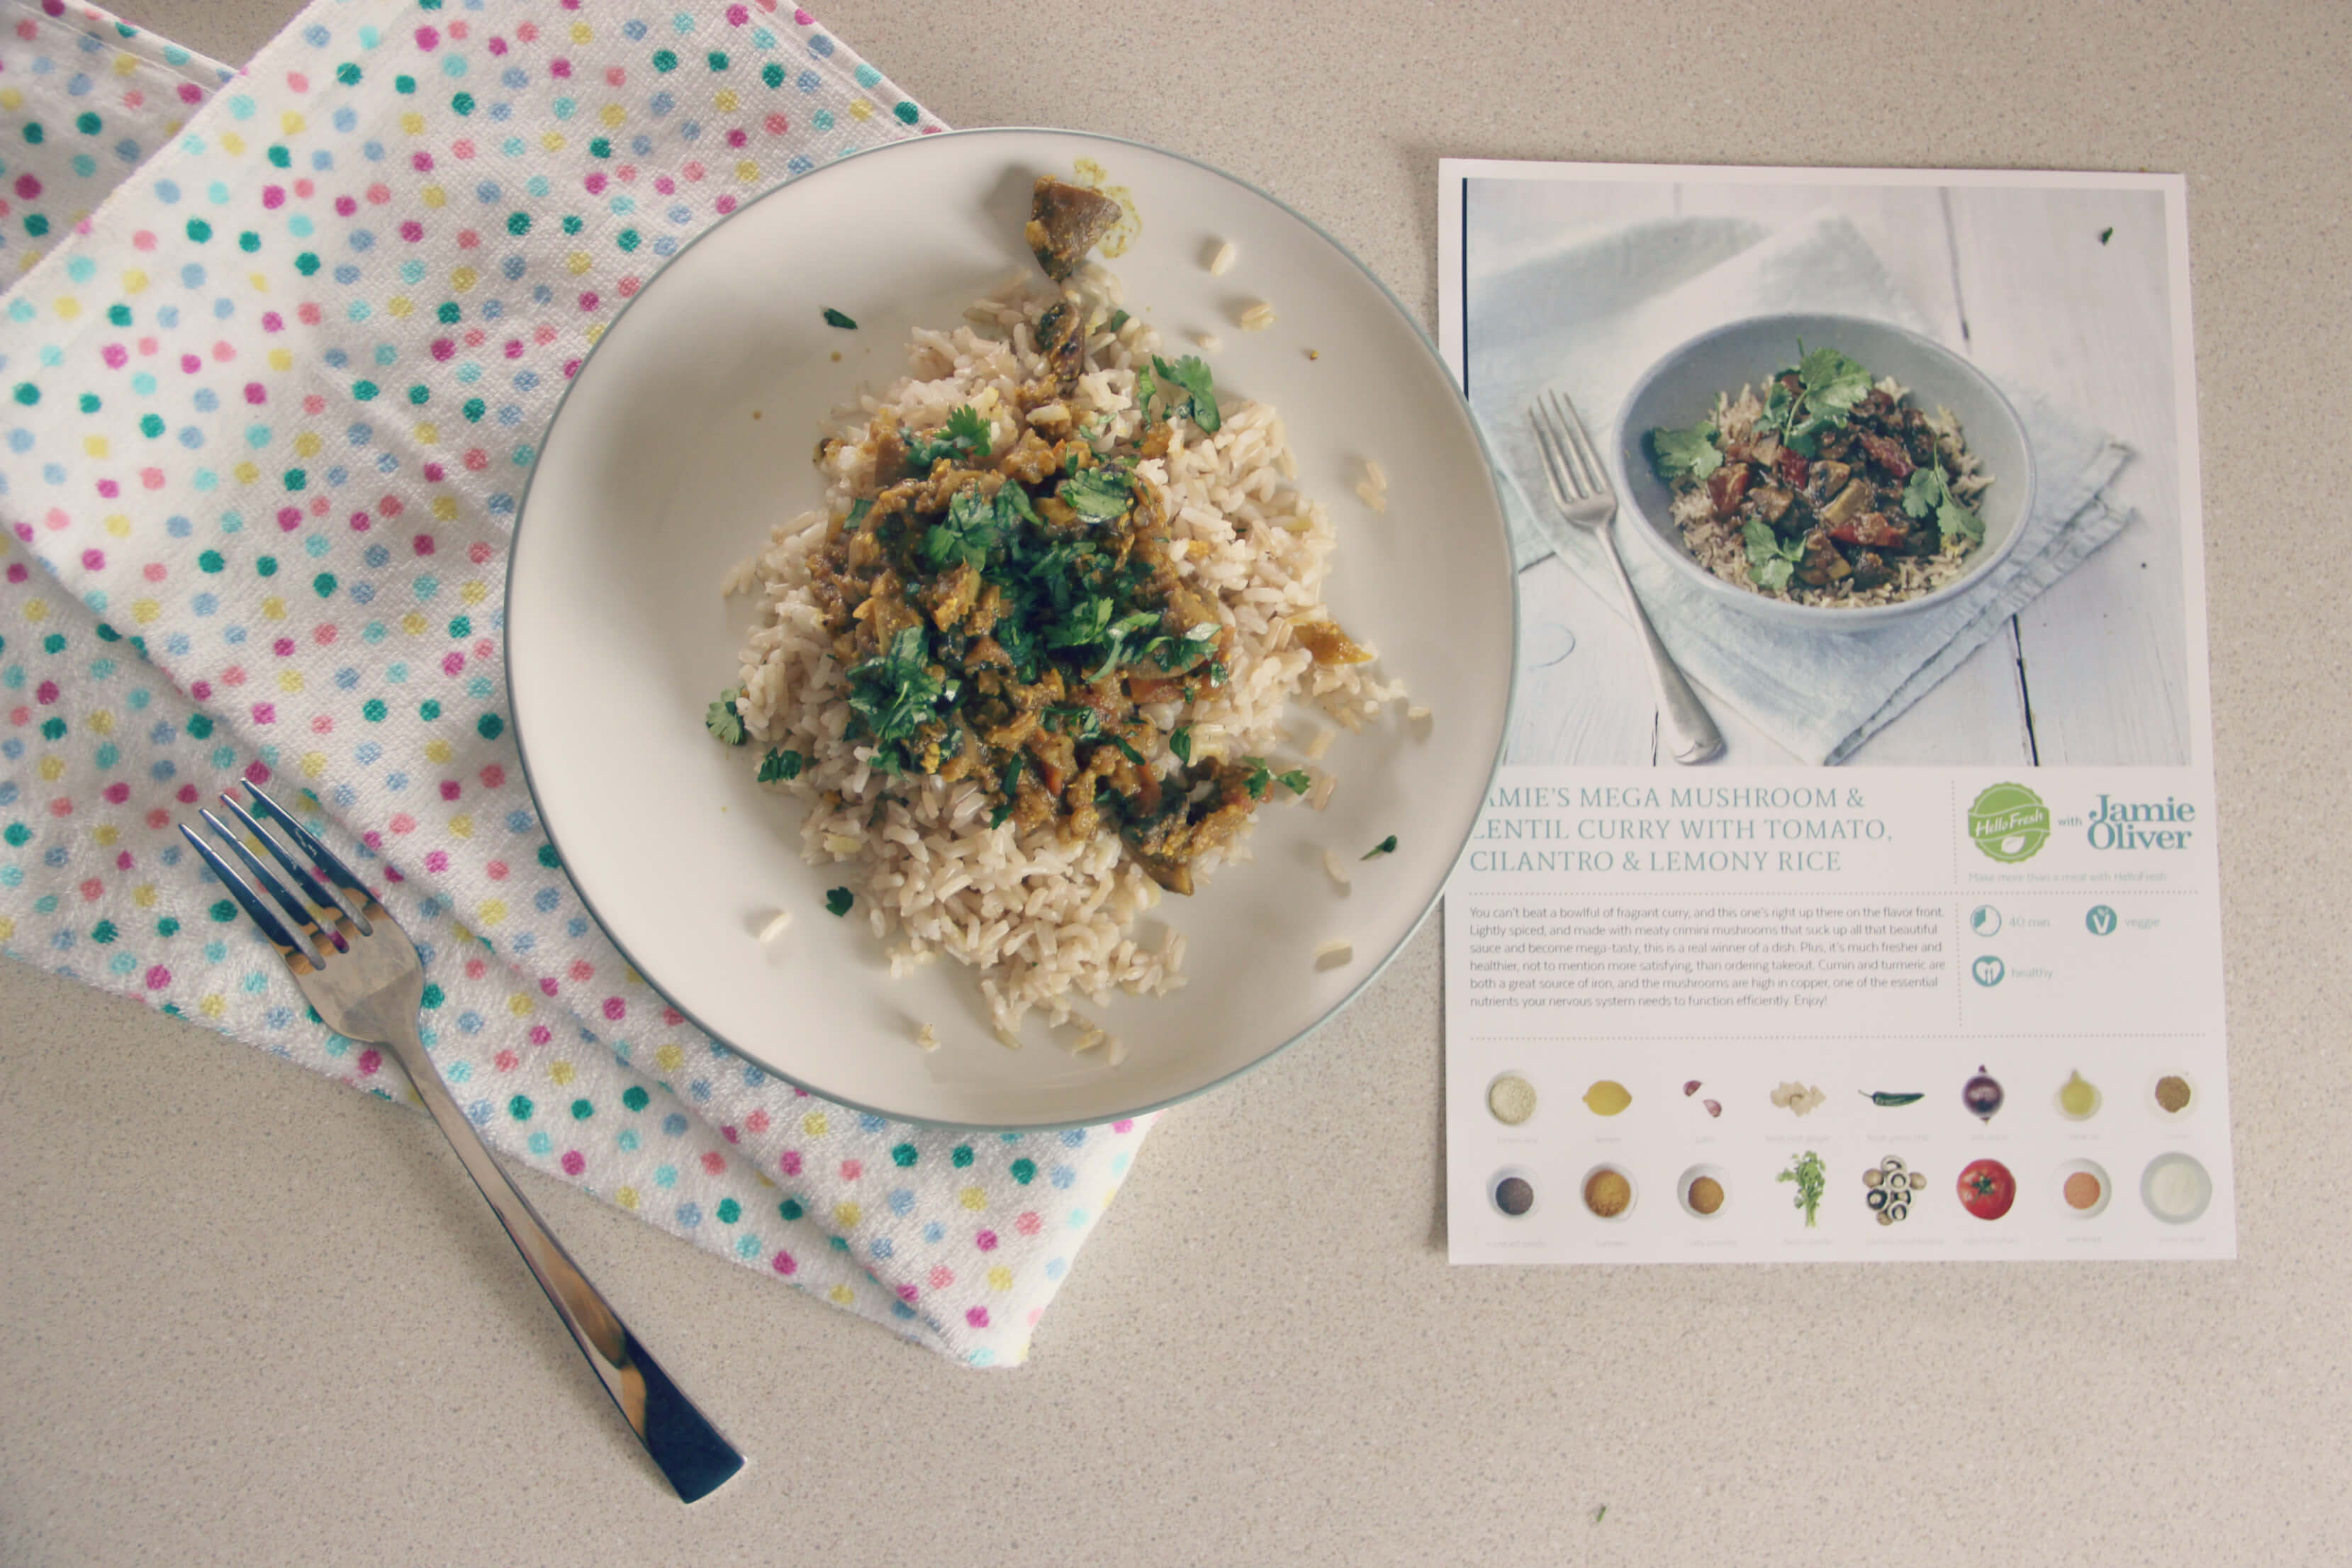 hellofresh Jamie's Mega Mushroom & Lentil Curry